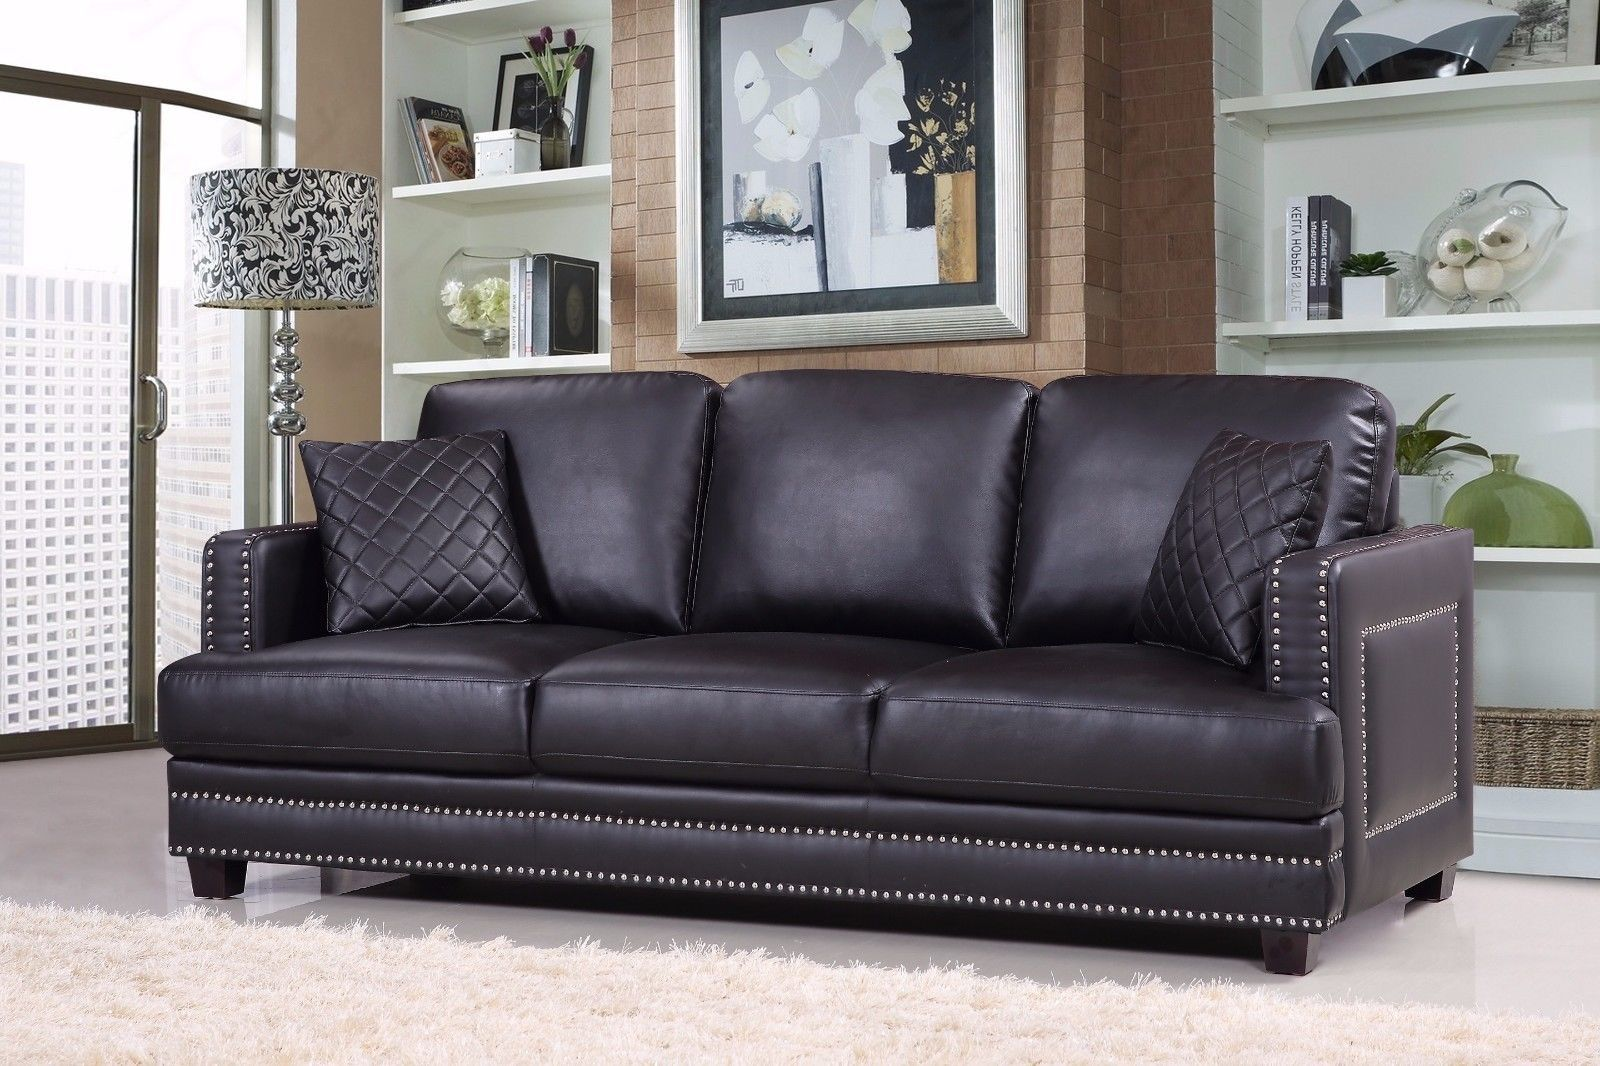 Meridian 655 Bonded Leather Living Room Sofa Set 3pc. Black Contemporary Style